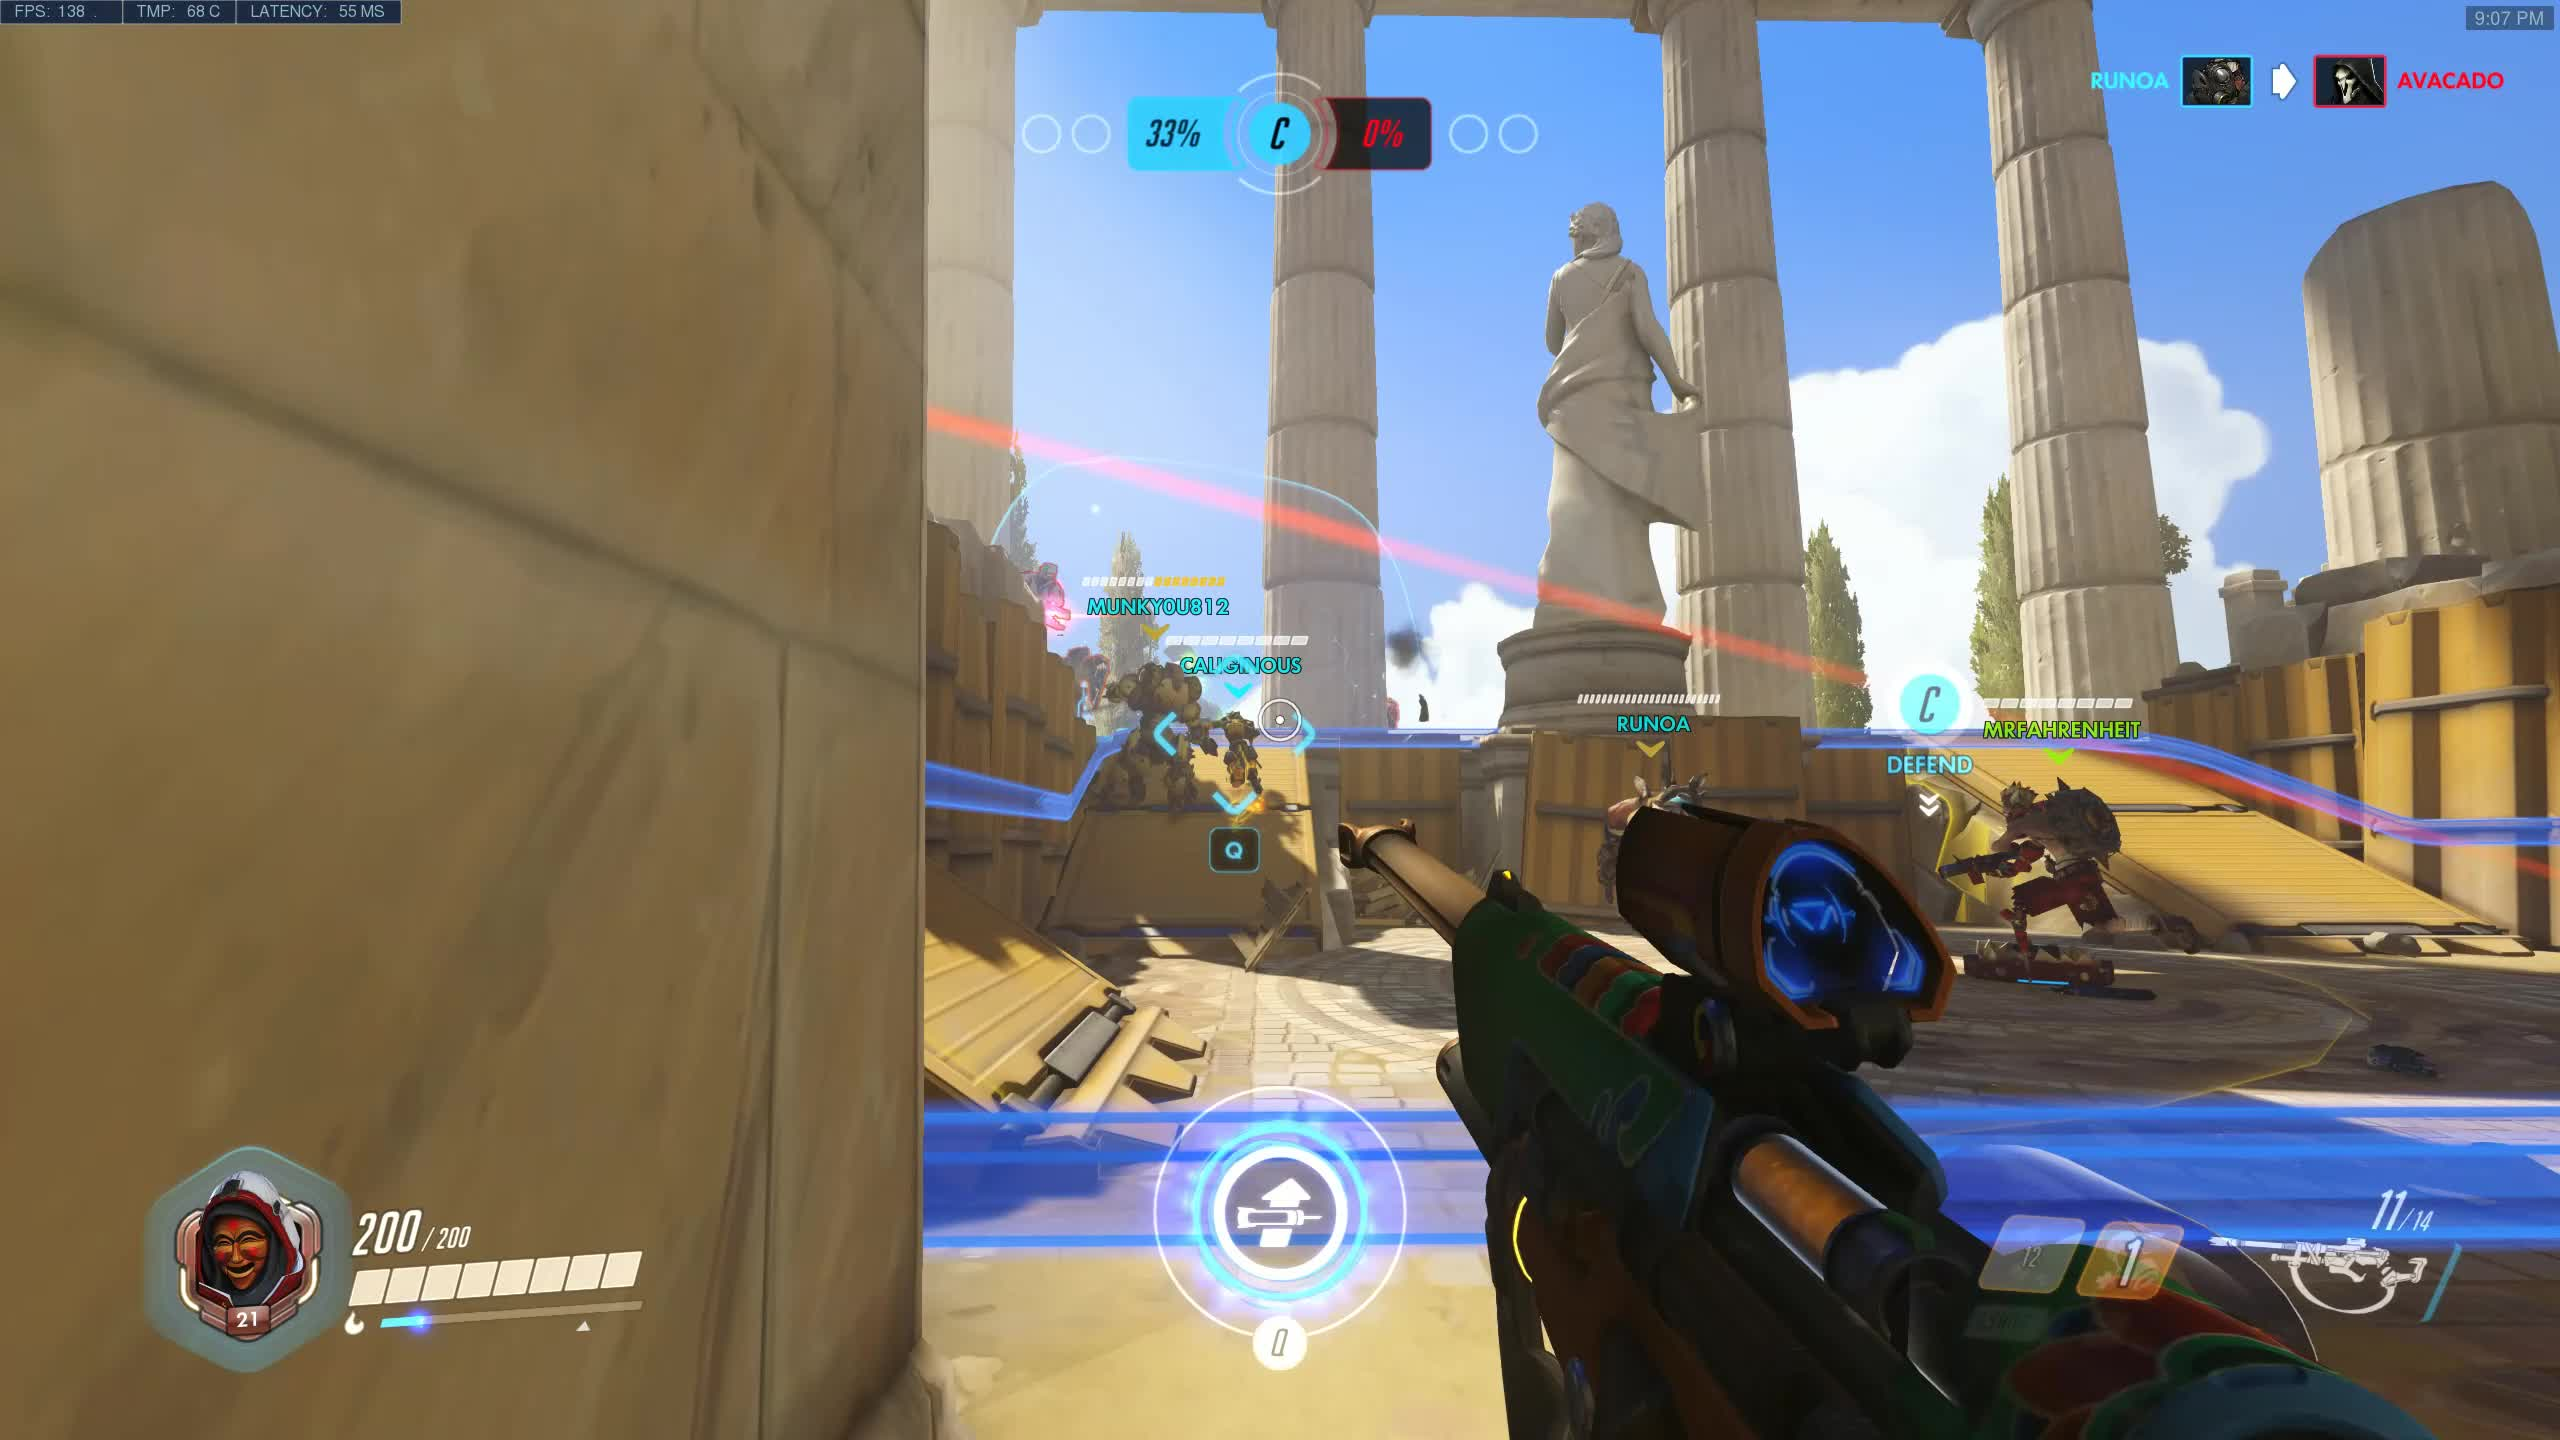 overwatch, Wtf lucio GIFs